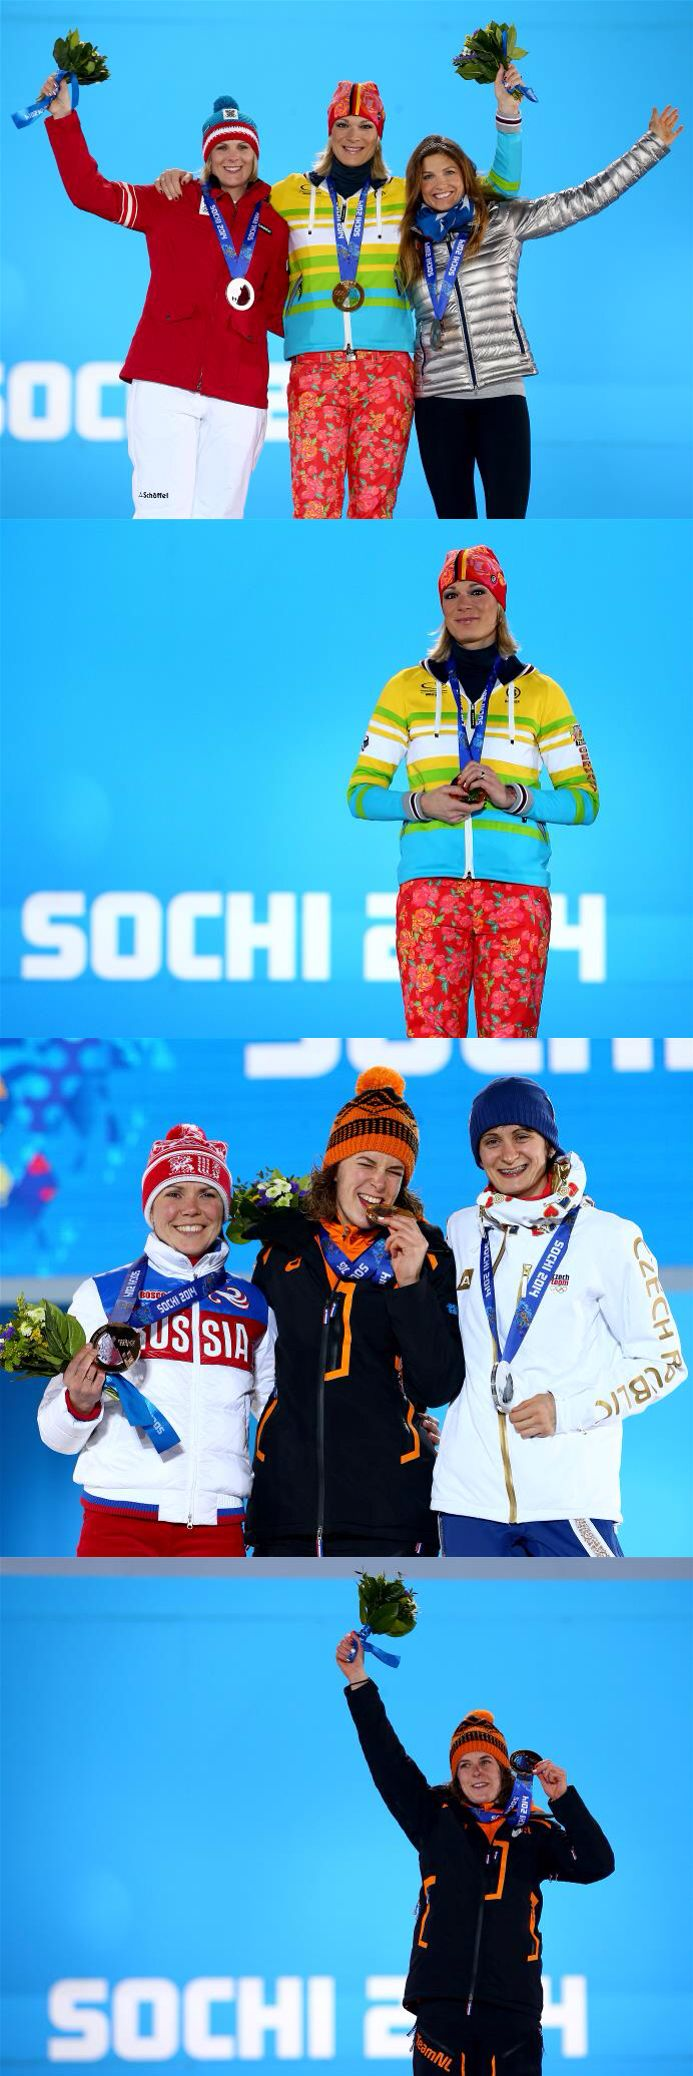 Sochi 2014 Day 4 / Medal Ceremony / (L-R) Silver medalist Nicole Hosp of Austria, gold medalist Maria Hoefl-Riesch of Germany and bronze medalist Julia Mancuso of the United States celebrate during the medal ceremony for the Alpine Skiing Women's Super Combined, (L-R) Bronze medalist Olga Graf of Russia, gold medalist Irene Wust of the Netherlands and silver medalist Martina Sablikova of the Czech Republic celebrate during the medal ceremony for the Ladies' 3000m speed skating